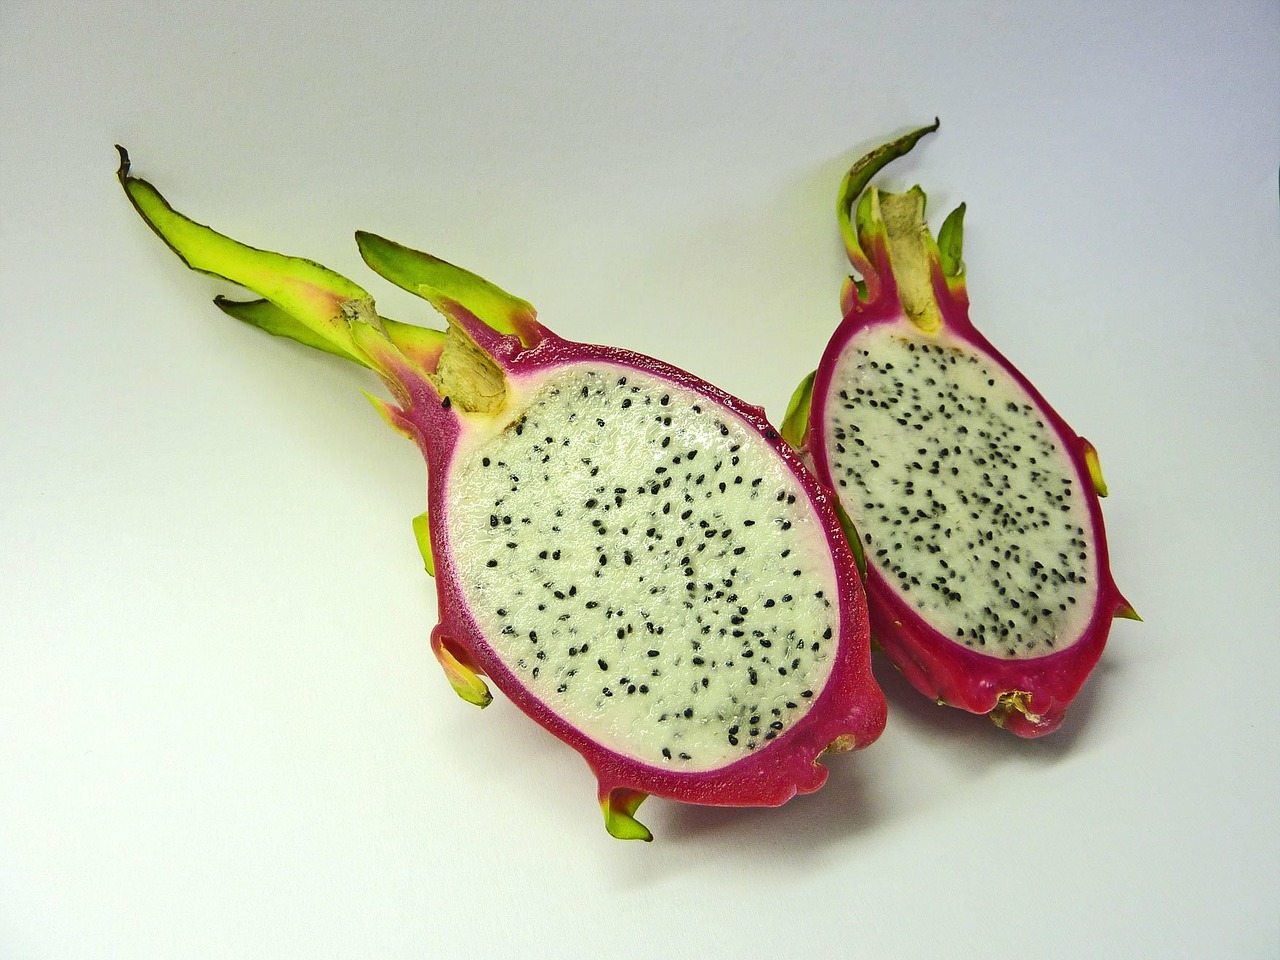 dragon-fruit-1134_1280